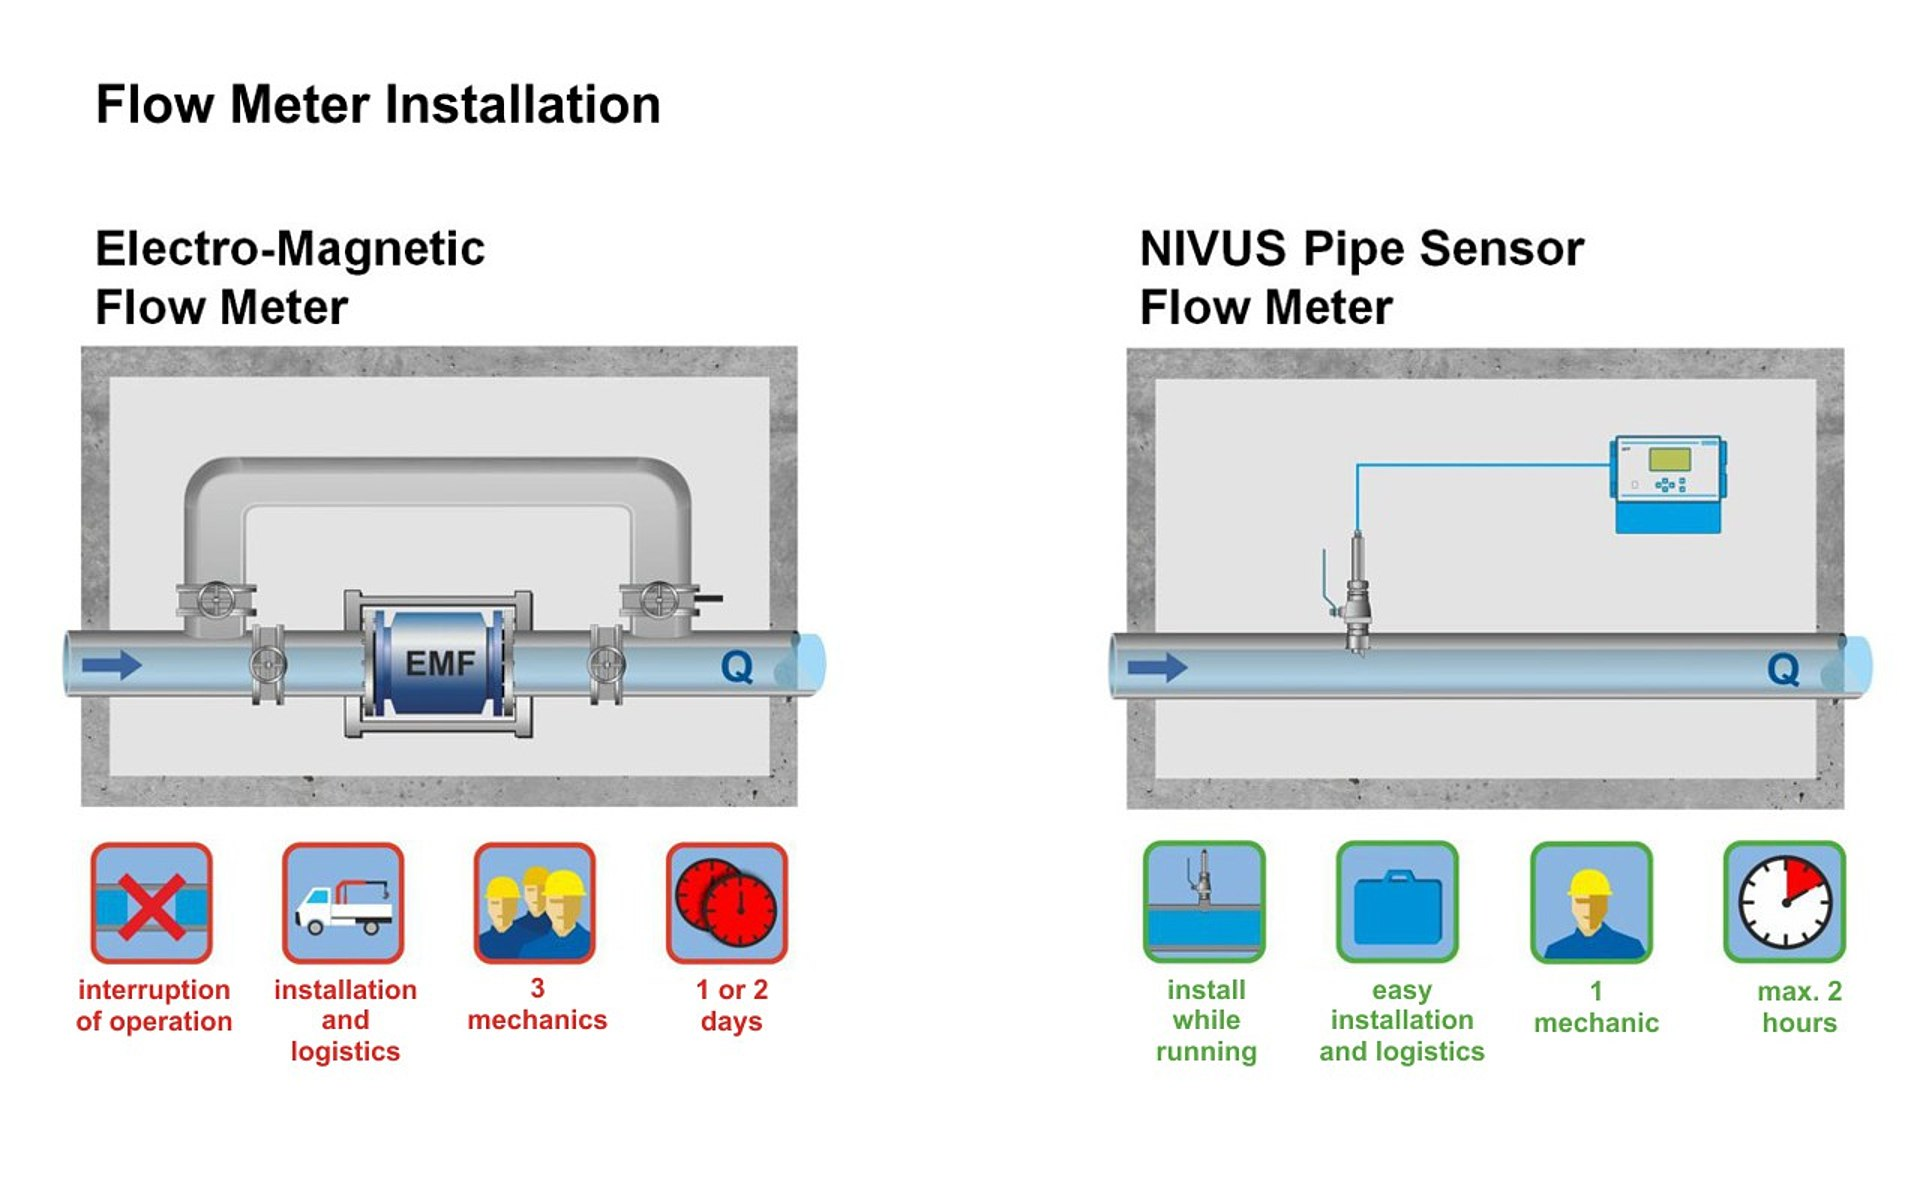 Mag Ic Flow Meter Wiring Diagram Schemes Base Nfp Milbank Socket Flowmeter Installation Comparison Dn 800